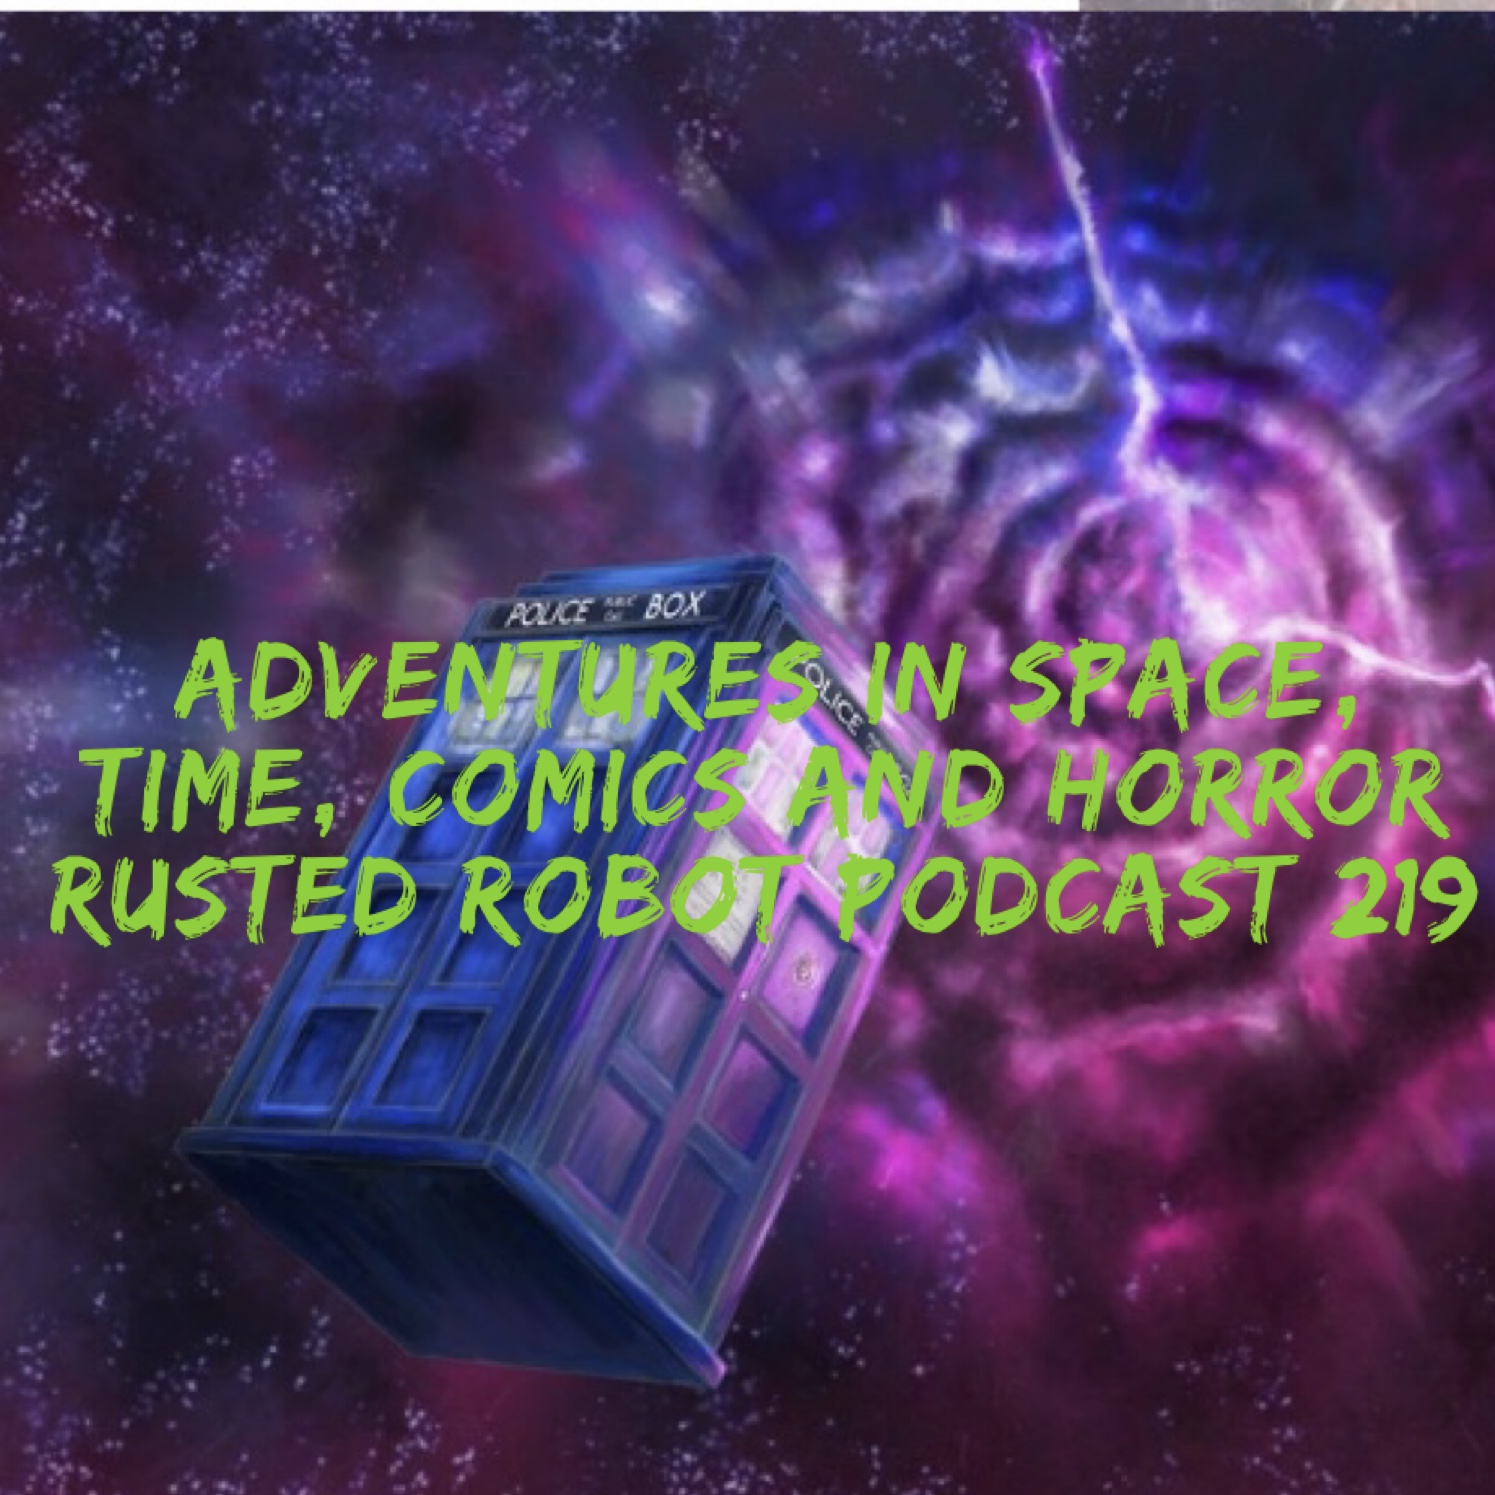 219: Adventures in Space, Time, Comics and Horror